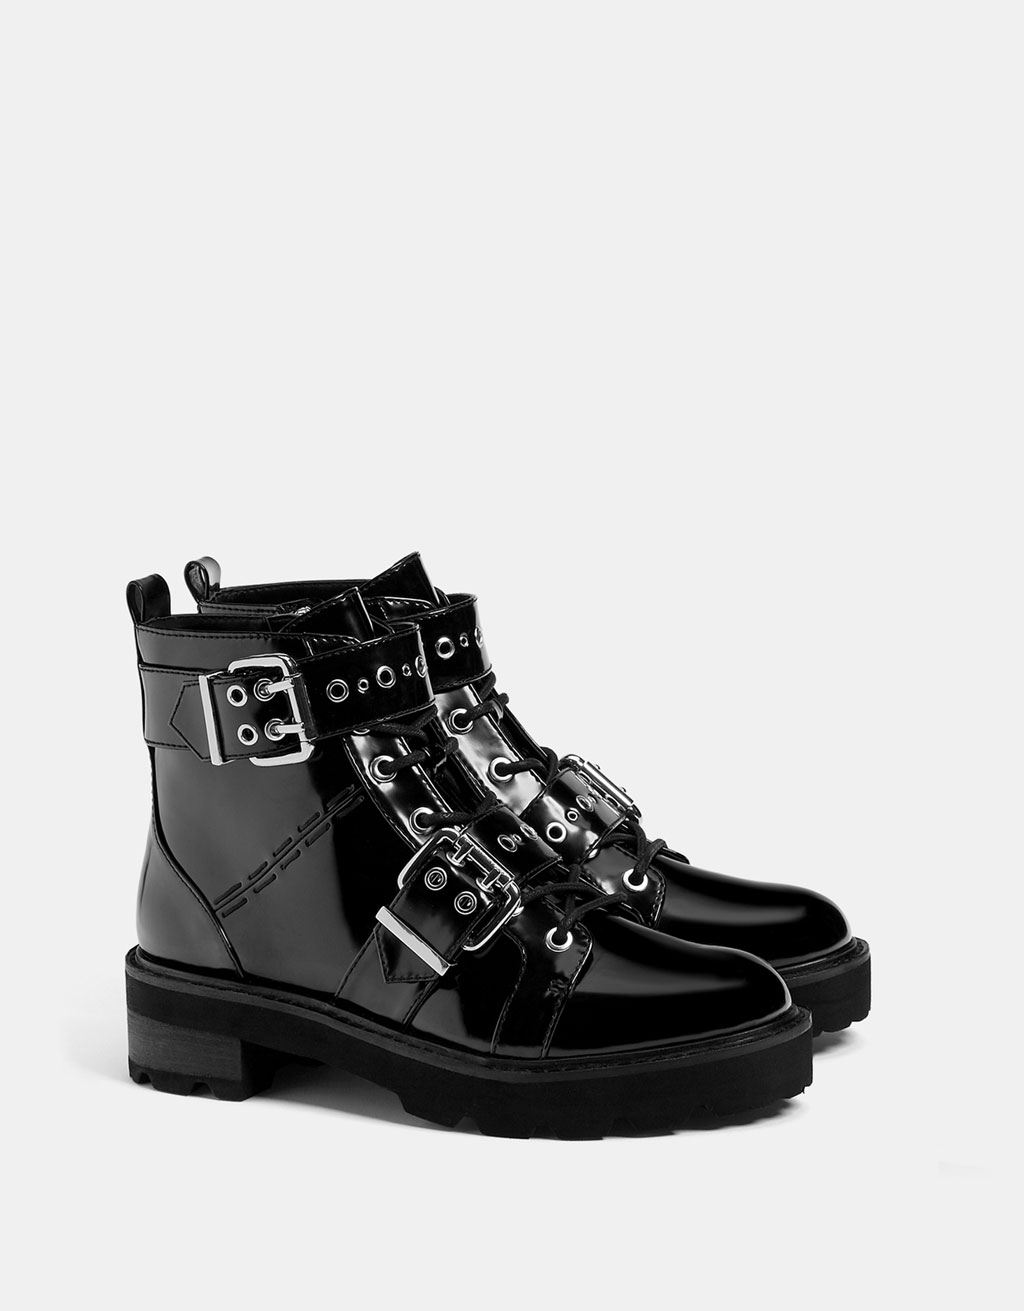 Biker ankle boots with buckles and studs